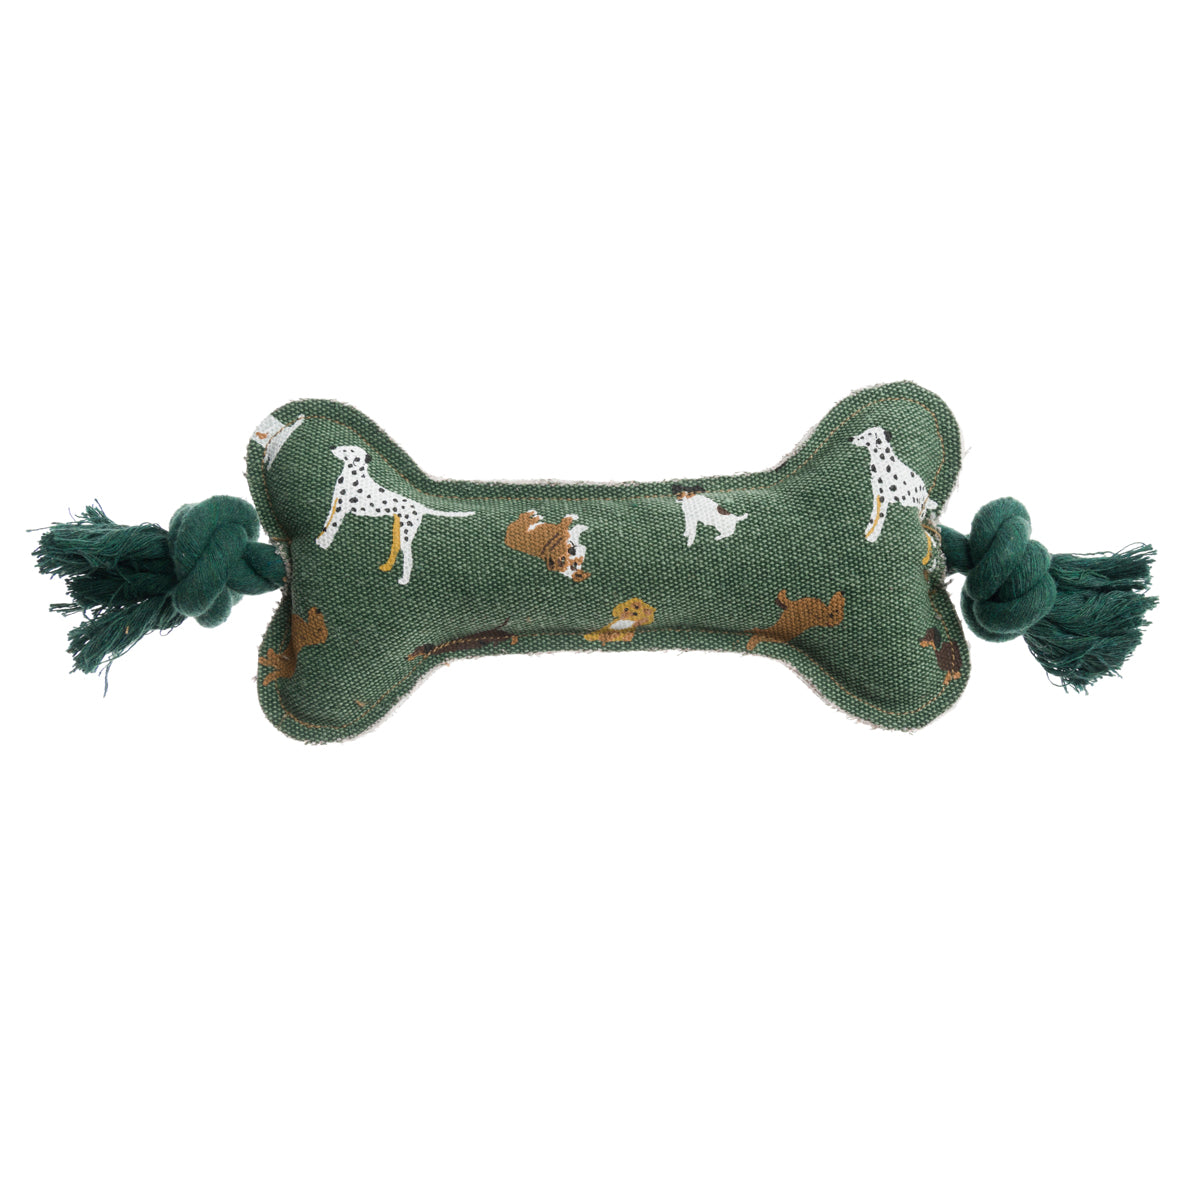 Fetch Dog Toy by Sophie Allport